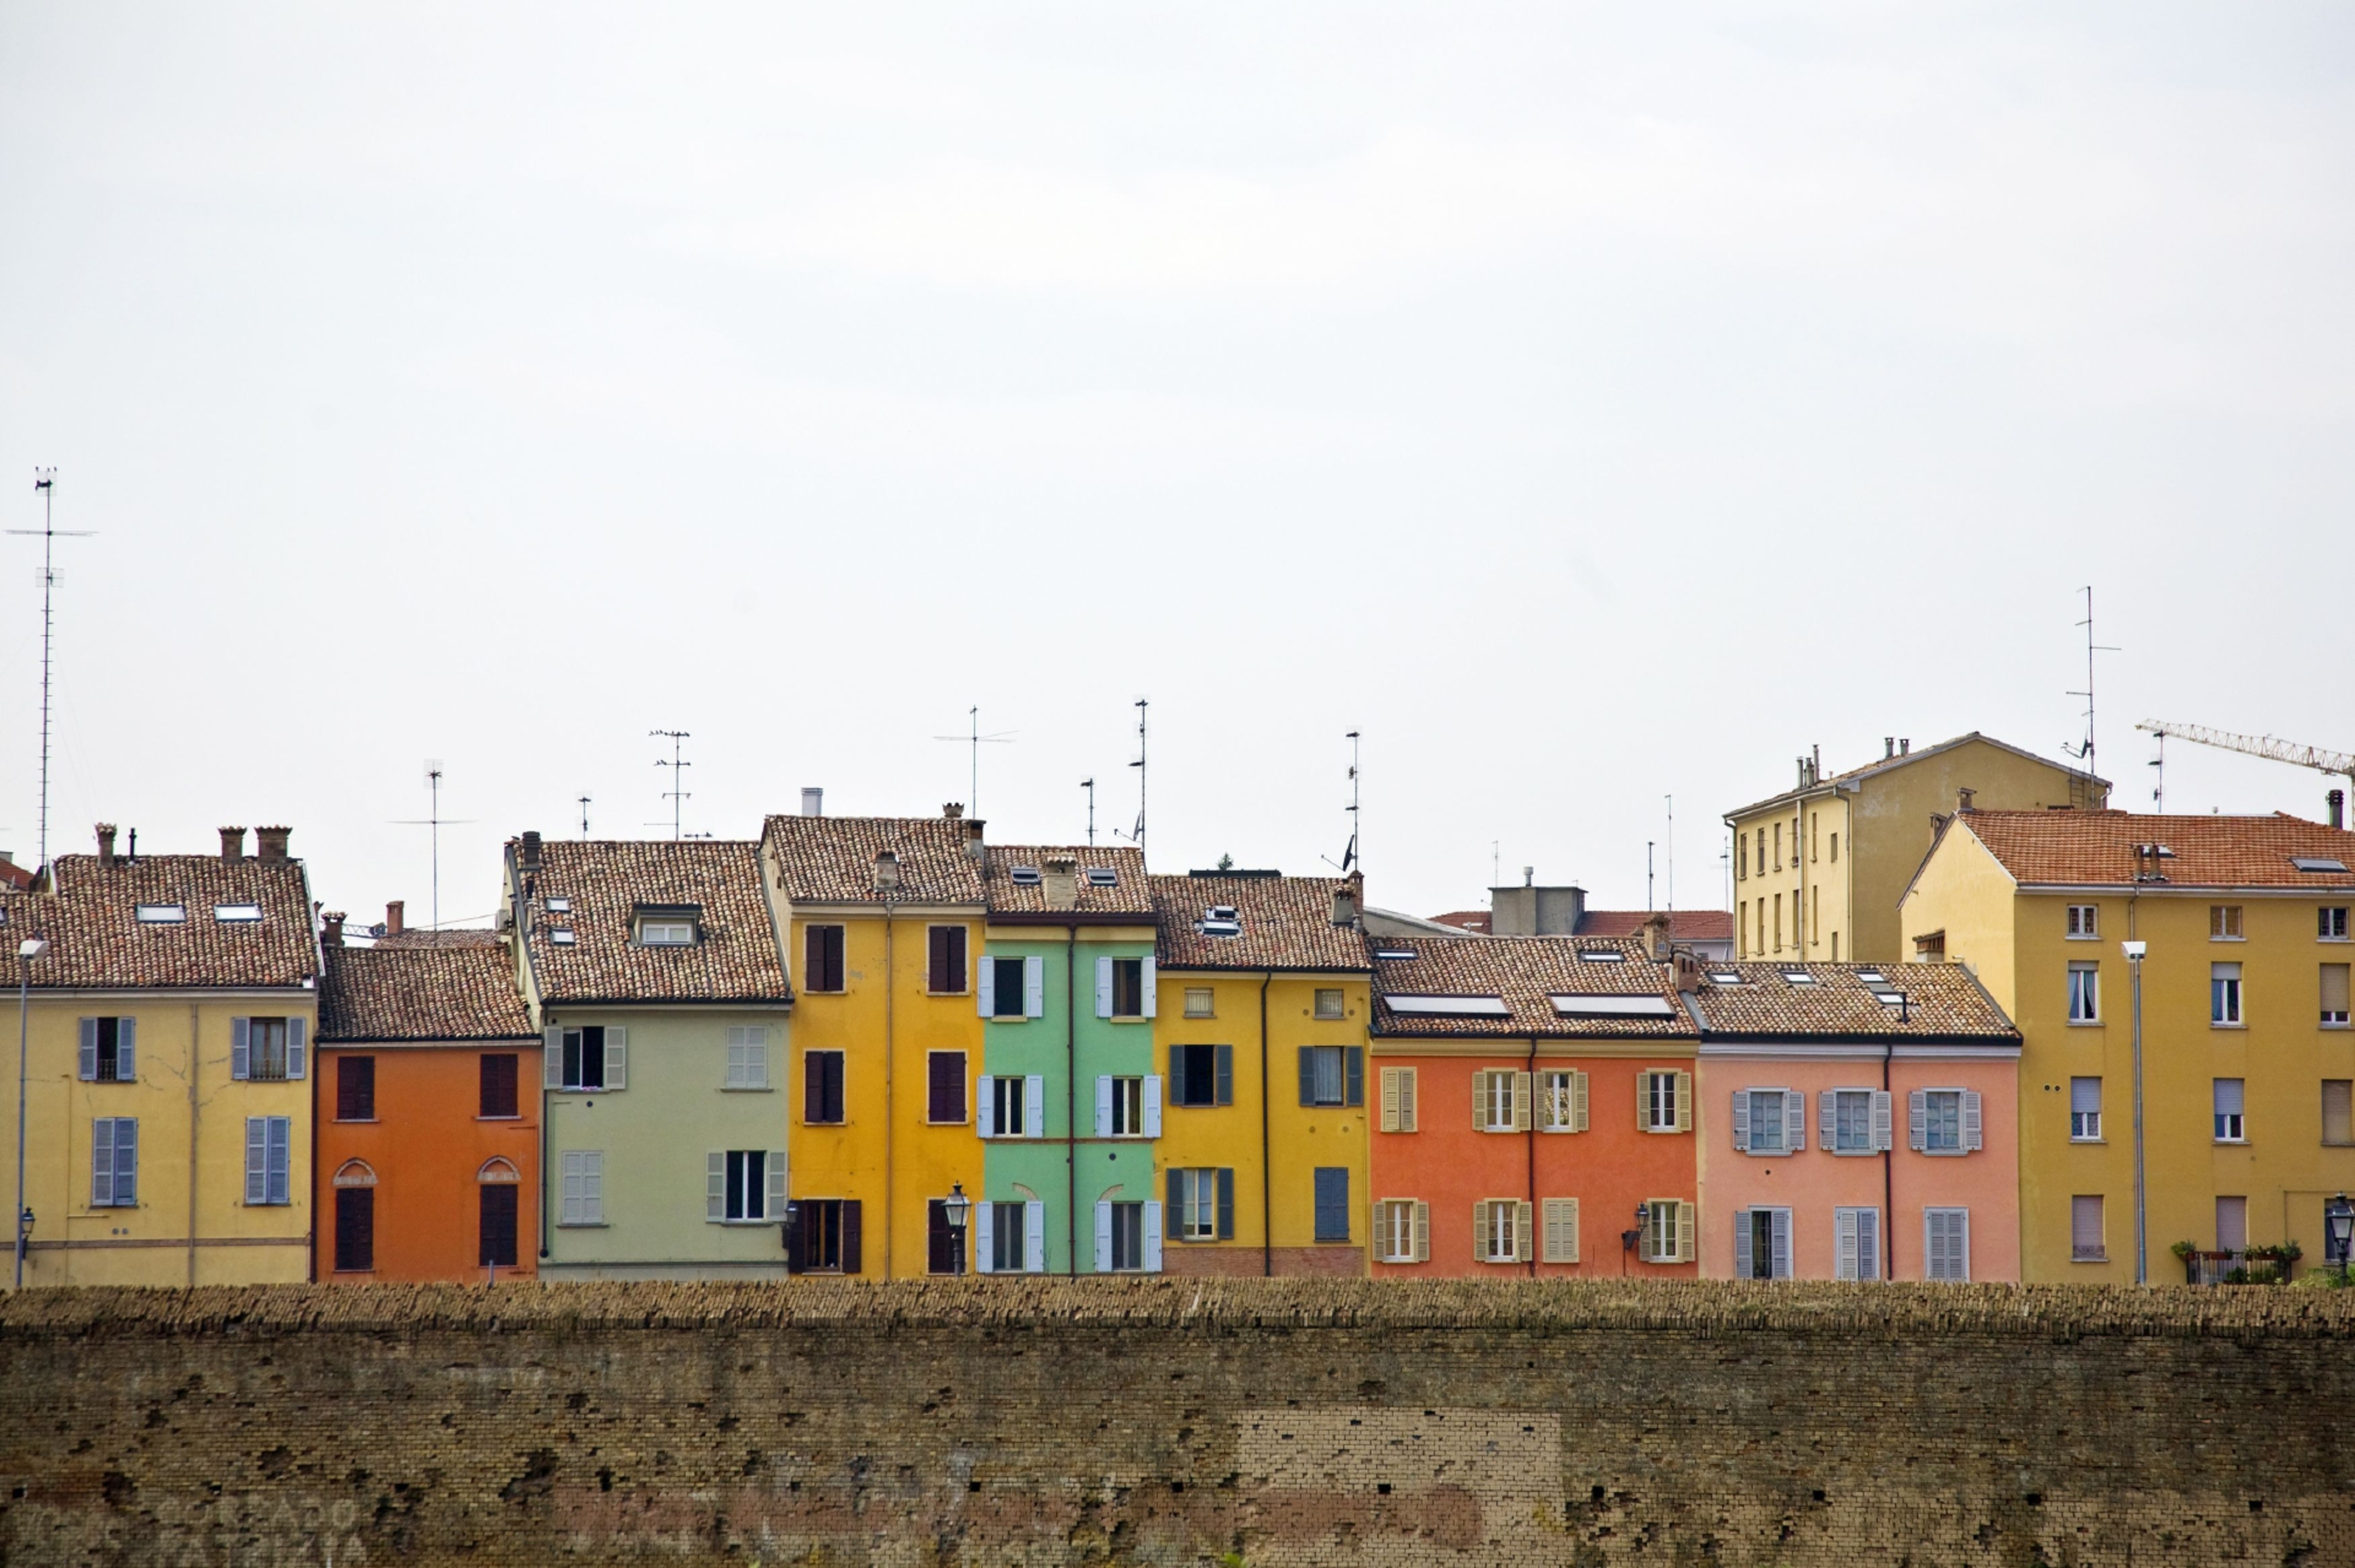 Colourful houses in Parma.